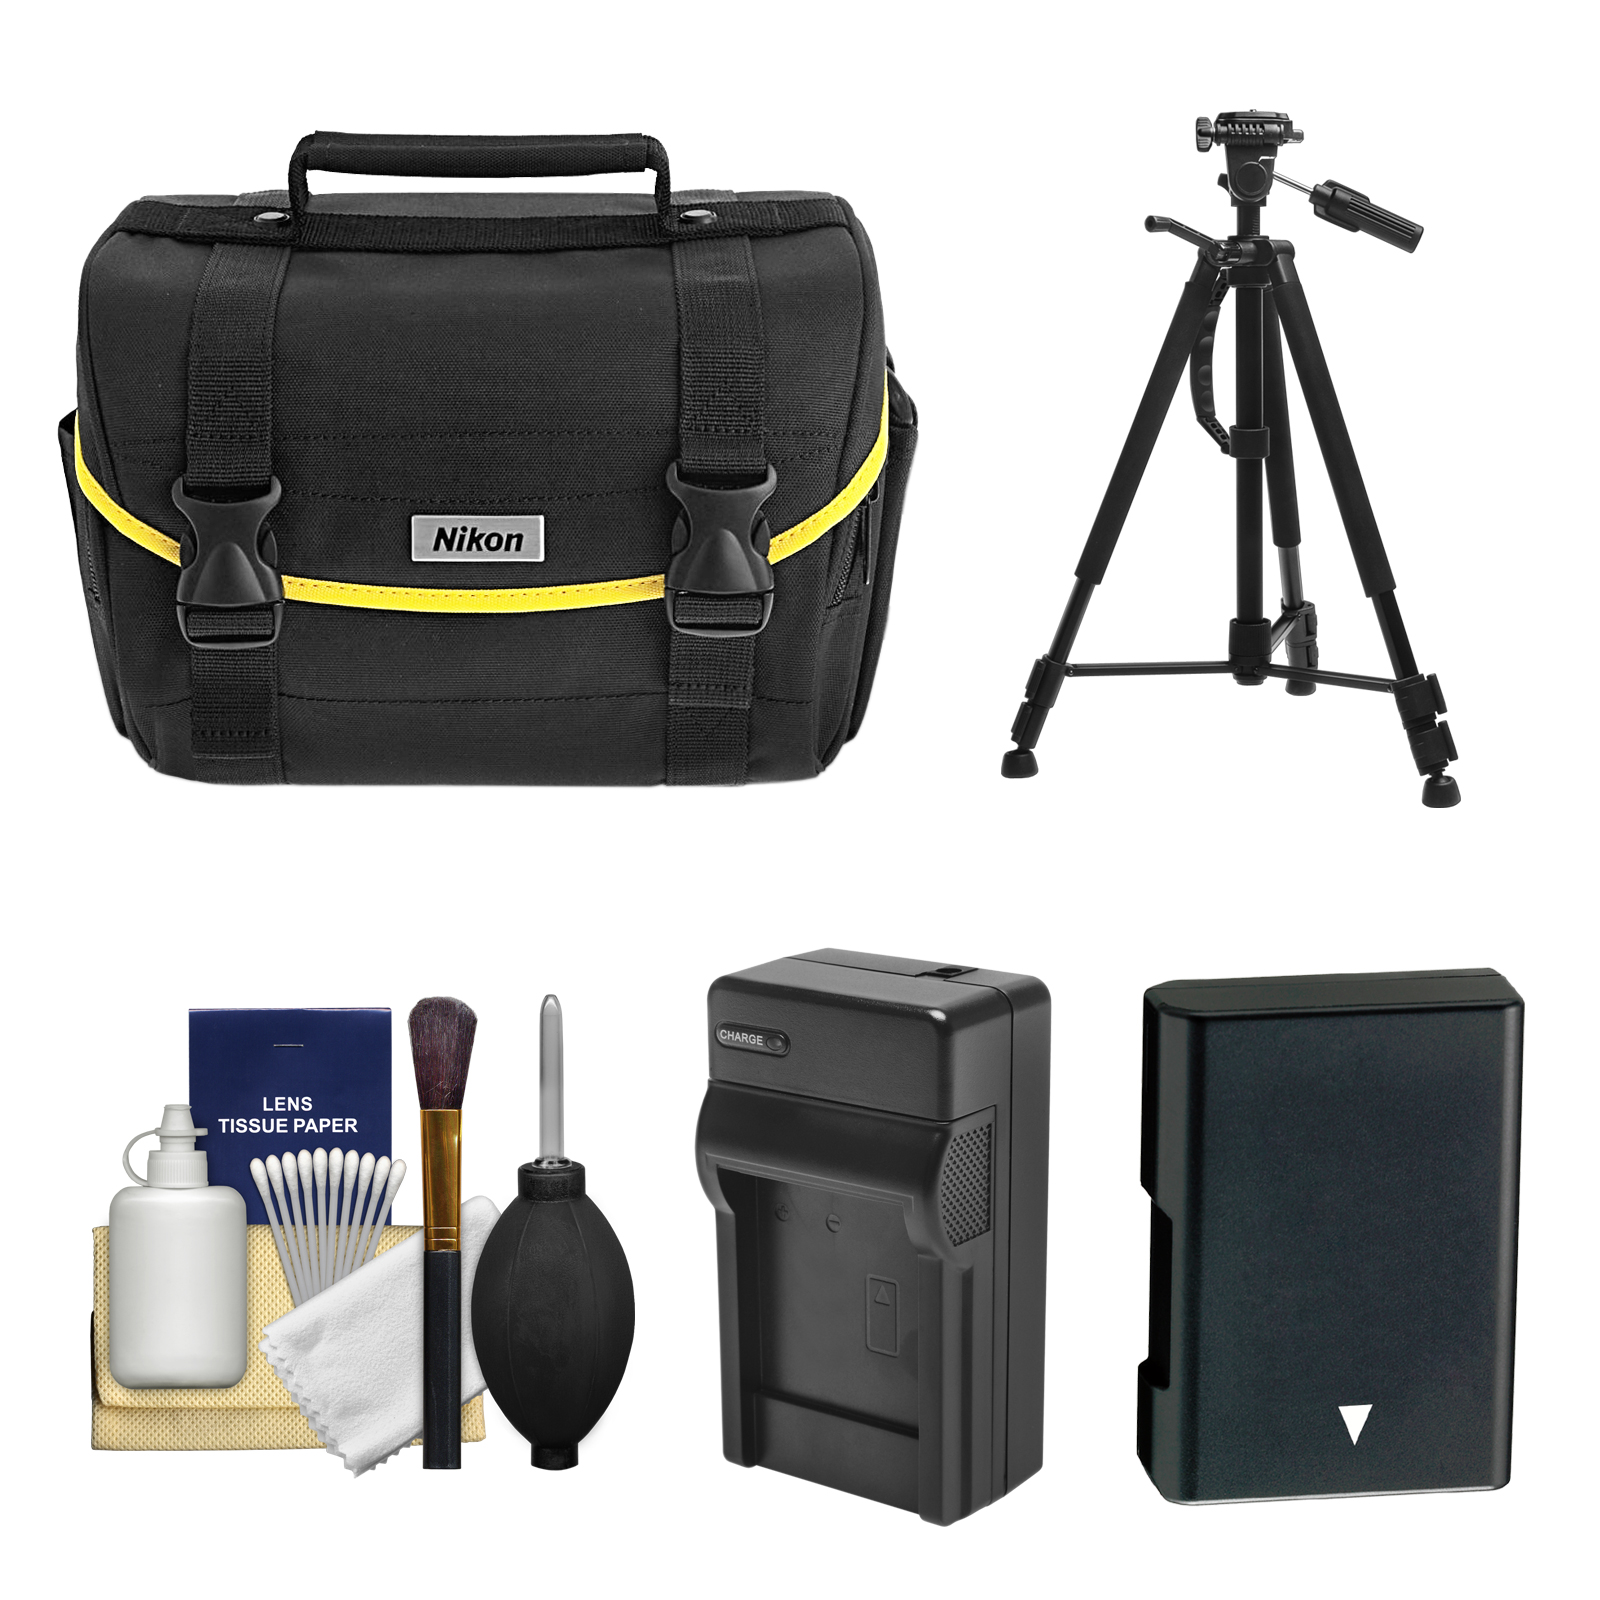 Nikon Starter Digital SLR Camera Case - Gadget Bag with EN-EL14 Battery + Charger + Tripod + Kit for for D3100, D3200, D3300, D5200, D5300, D5500